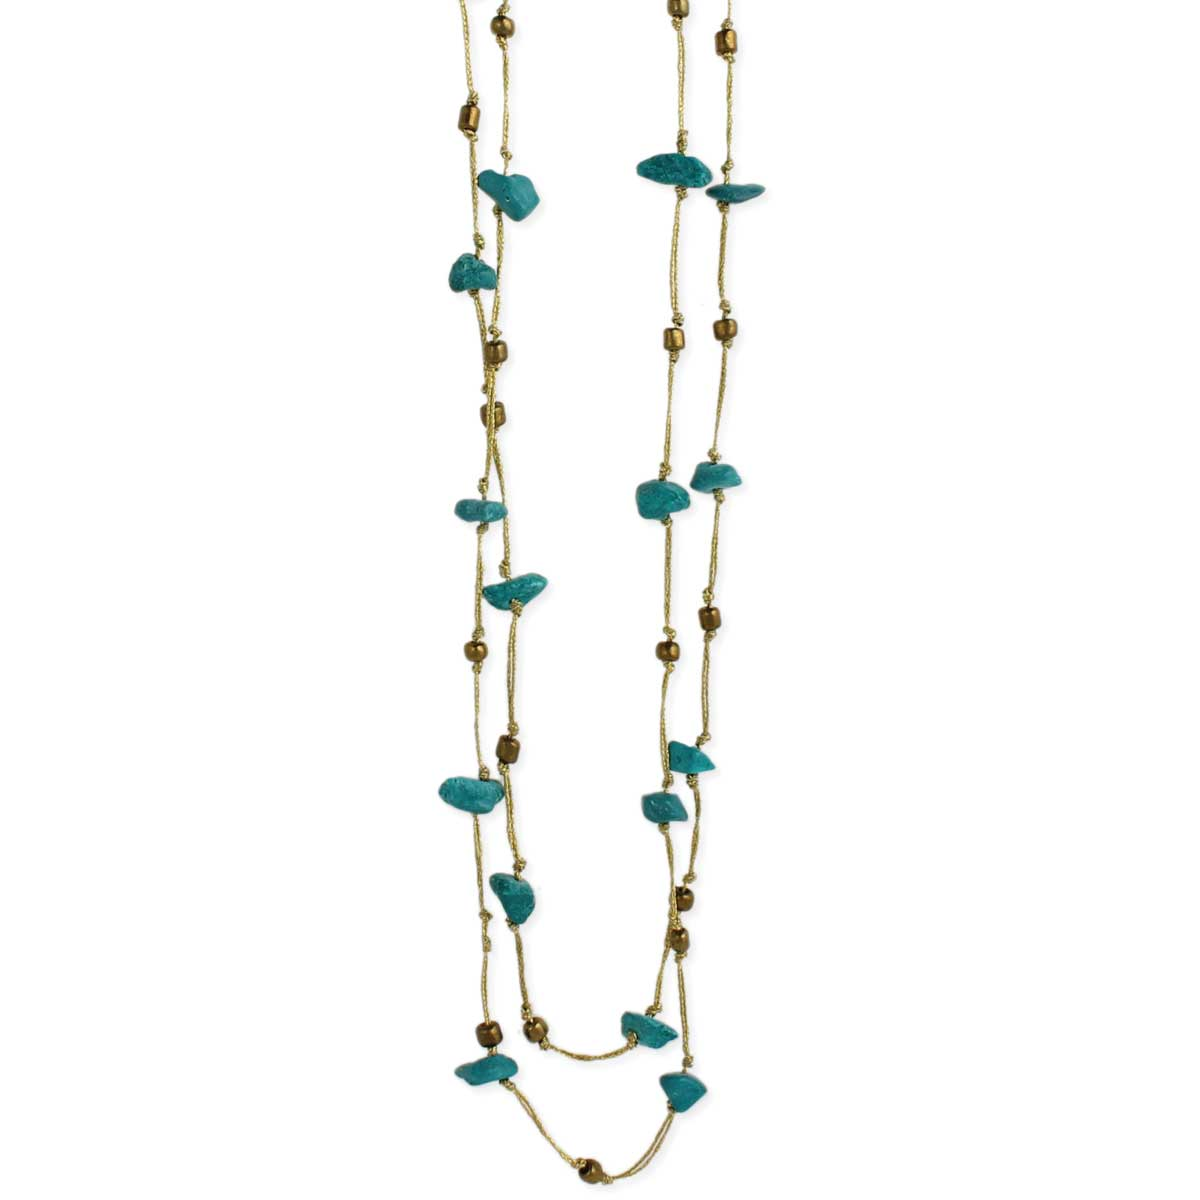 Metallic Thread & Turquoise Chip Necklace